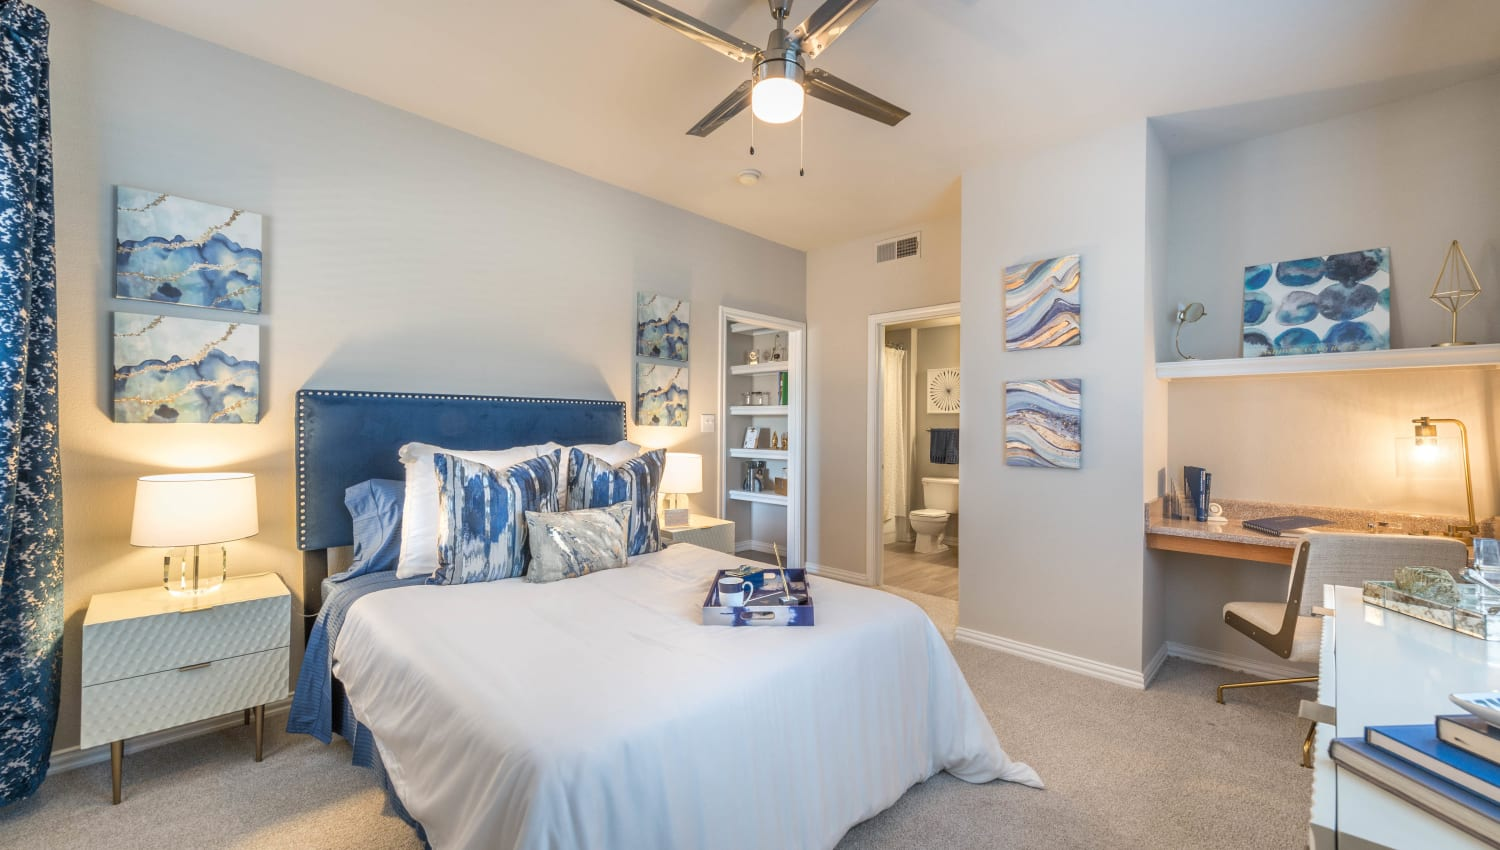 Built-in shelving and desk area in a model home's well-furnished master bedroom at Olympus Stone Glen in Keller, Texas